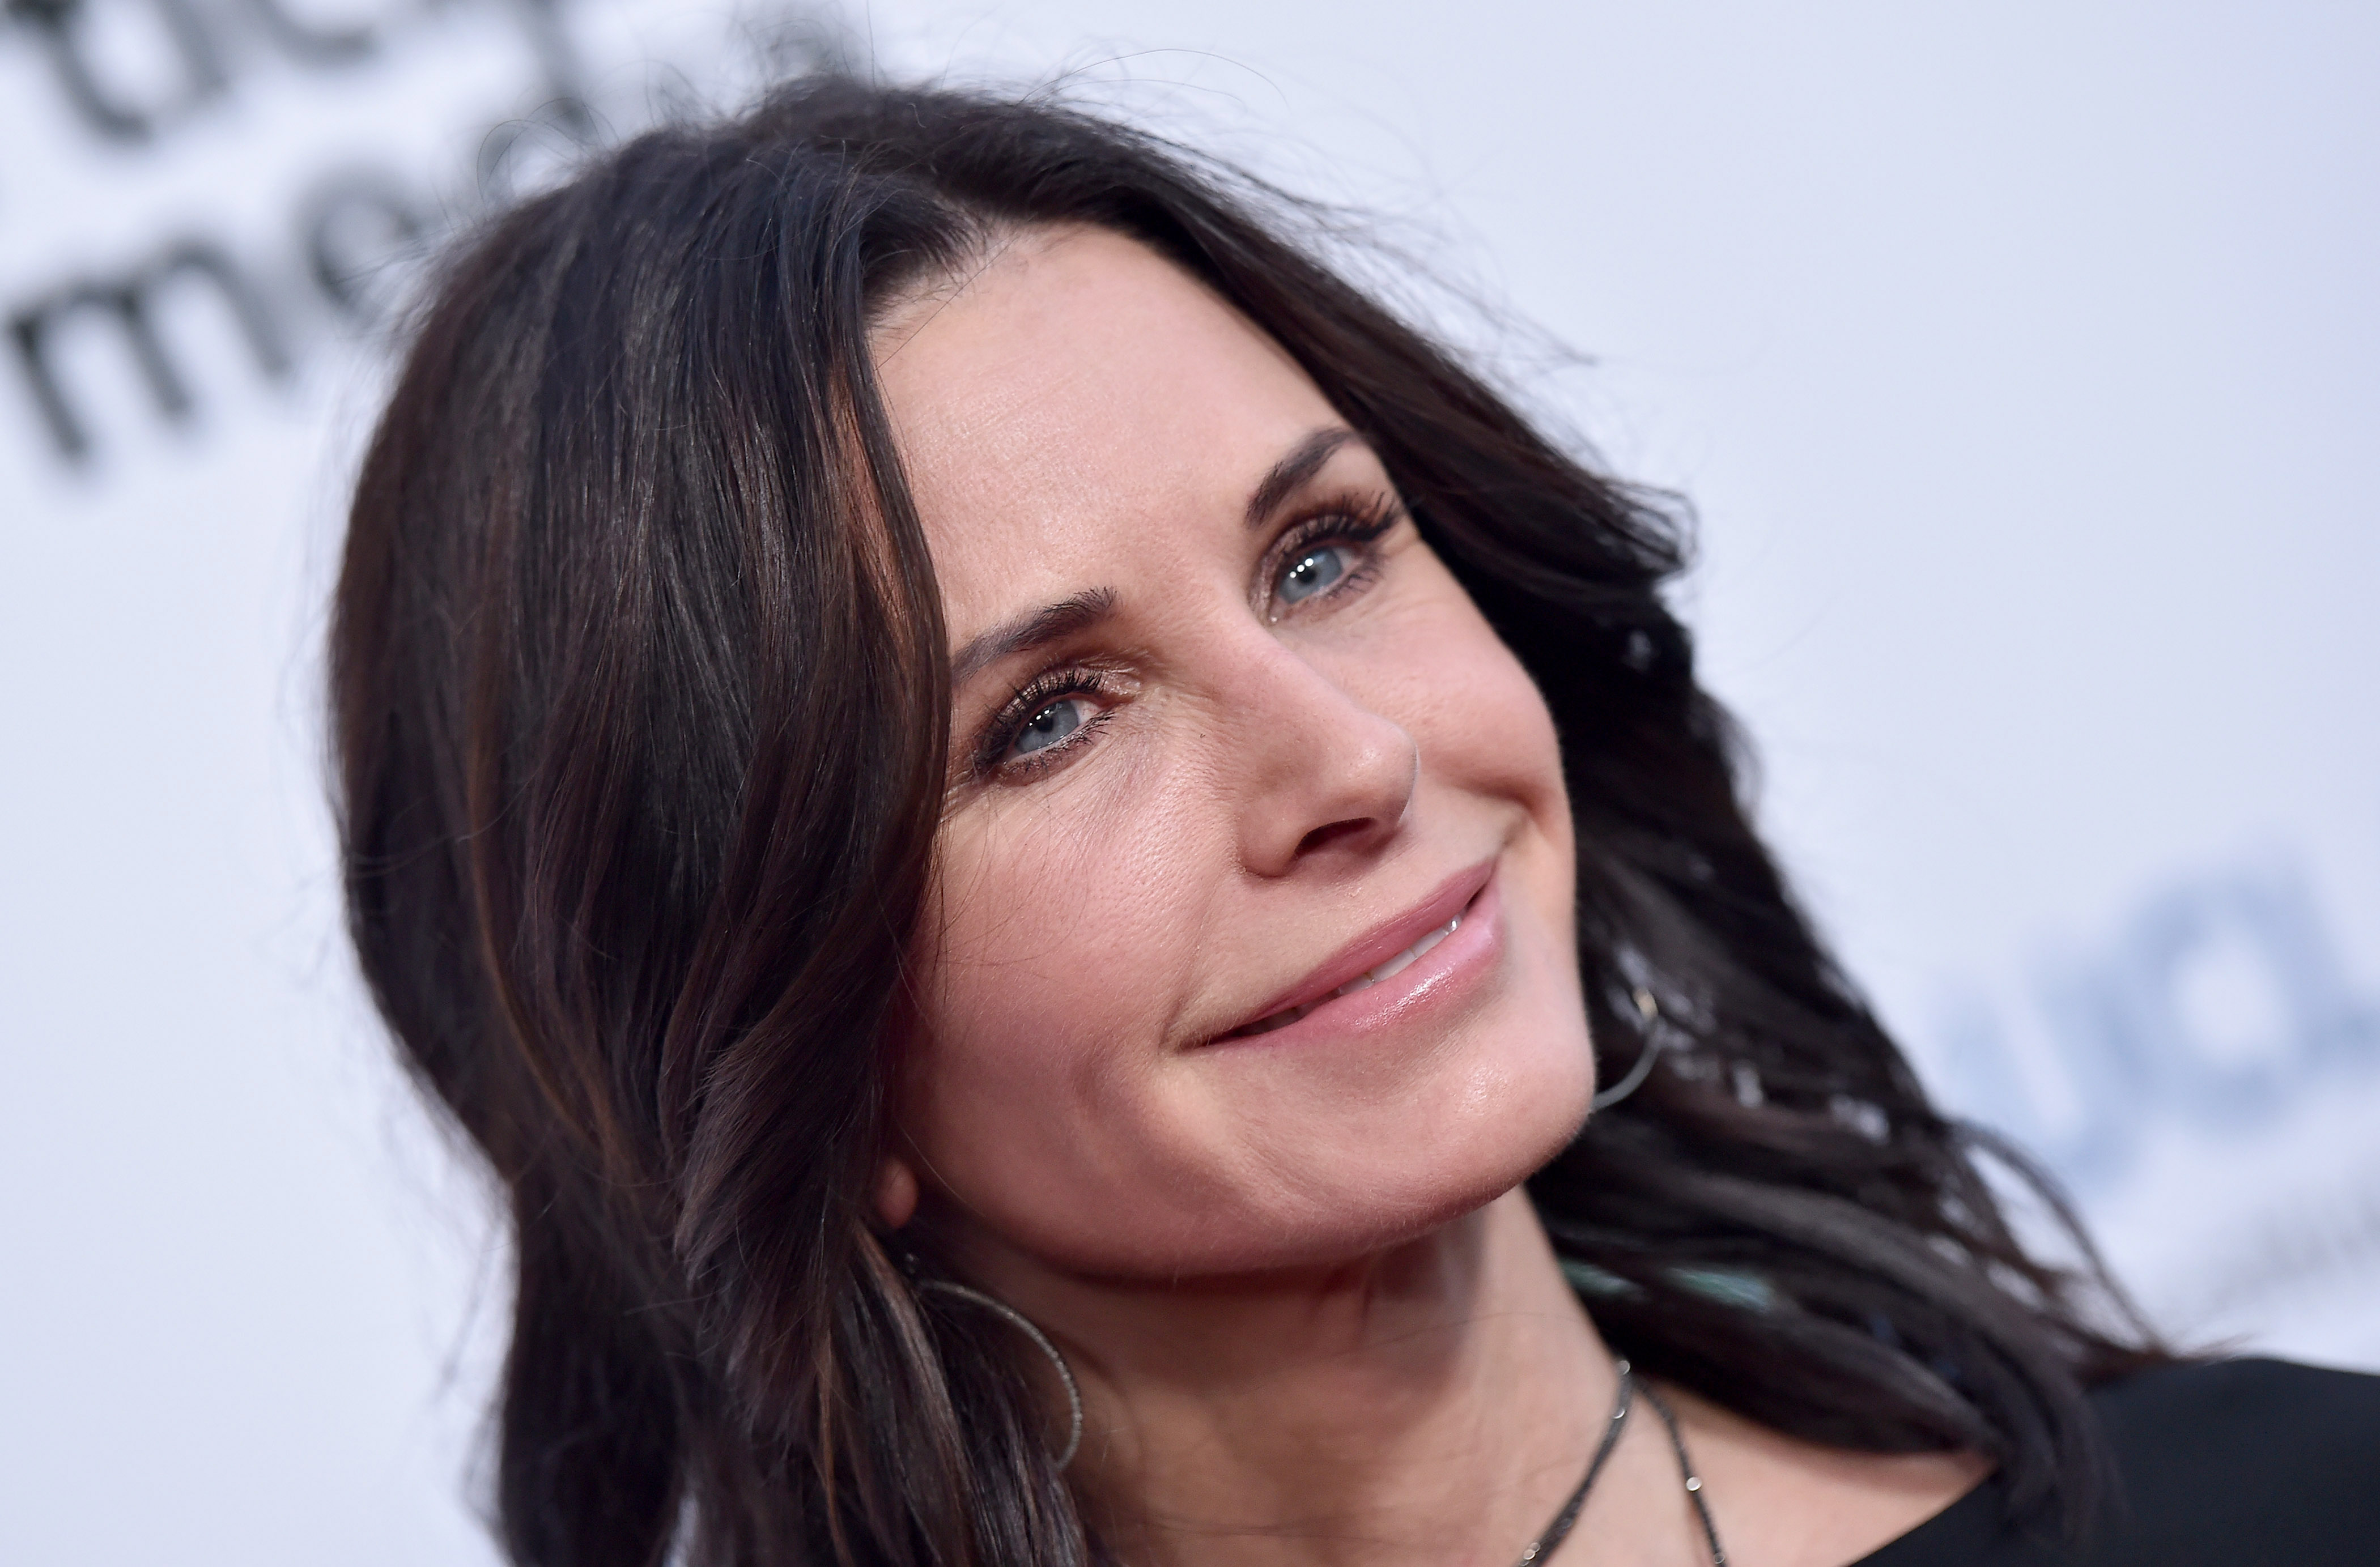 Courteney Cox's plastic surgery confession: 'I've done things that I regret for fame'